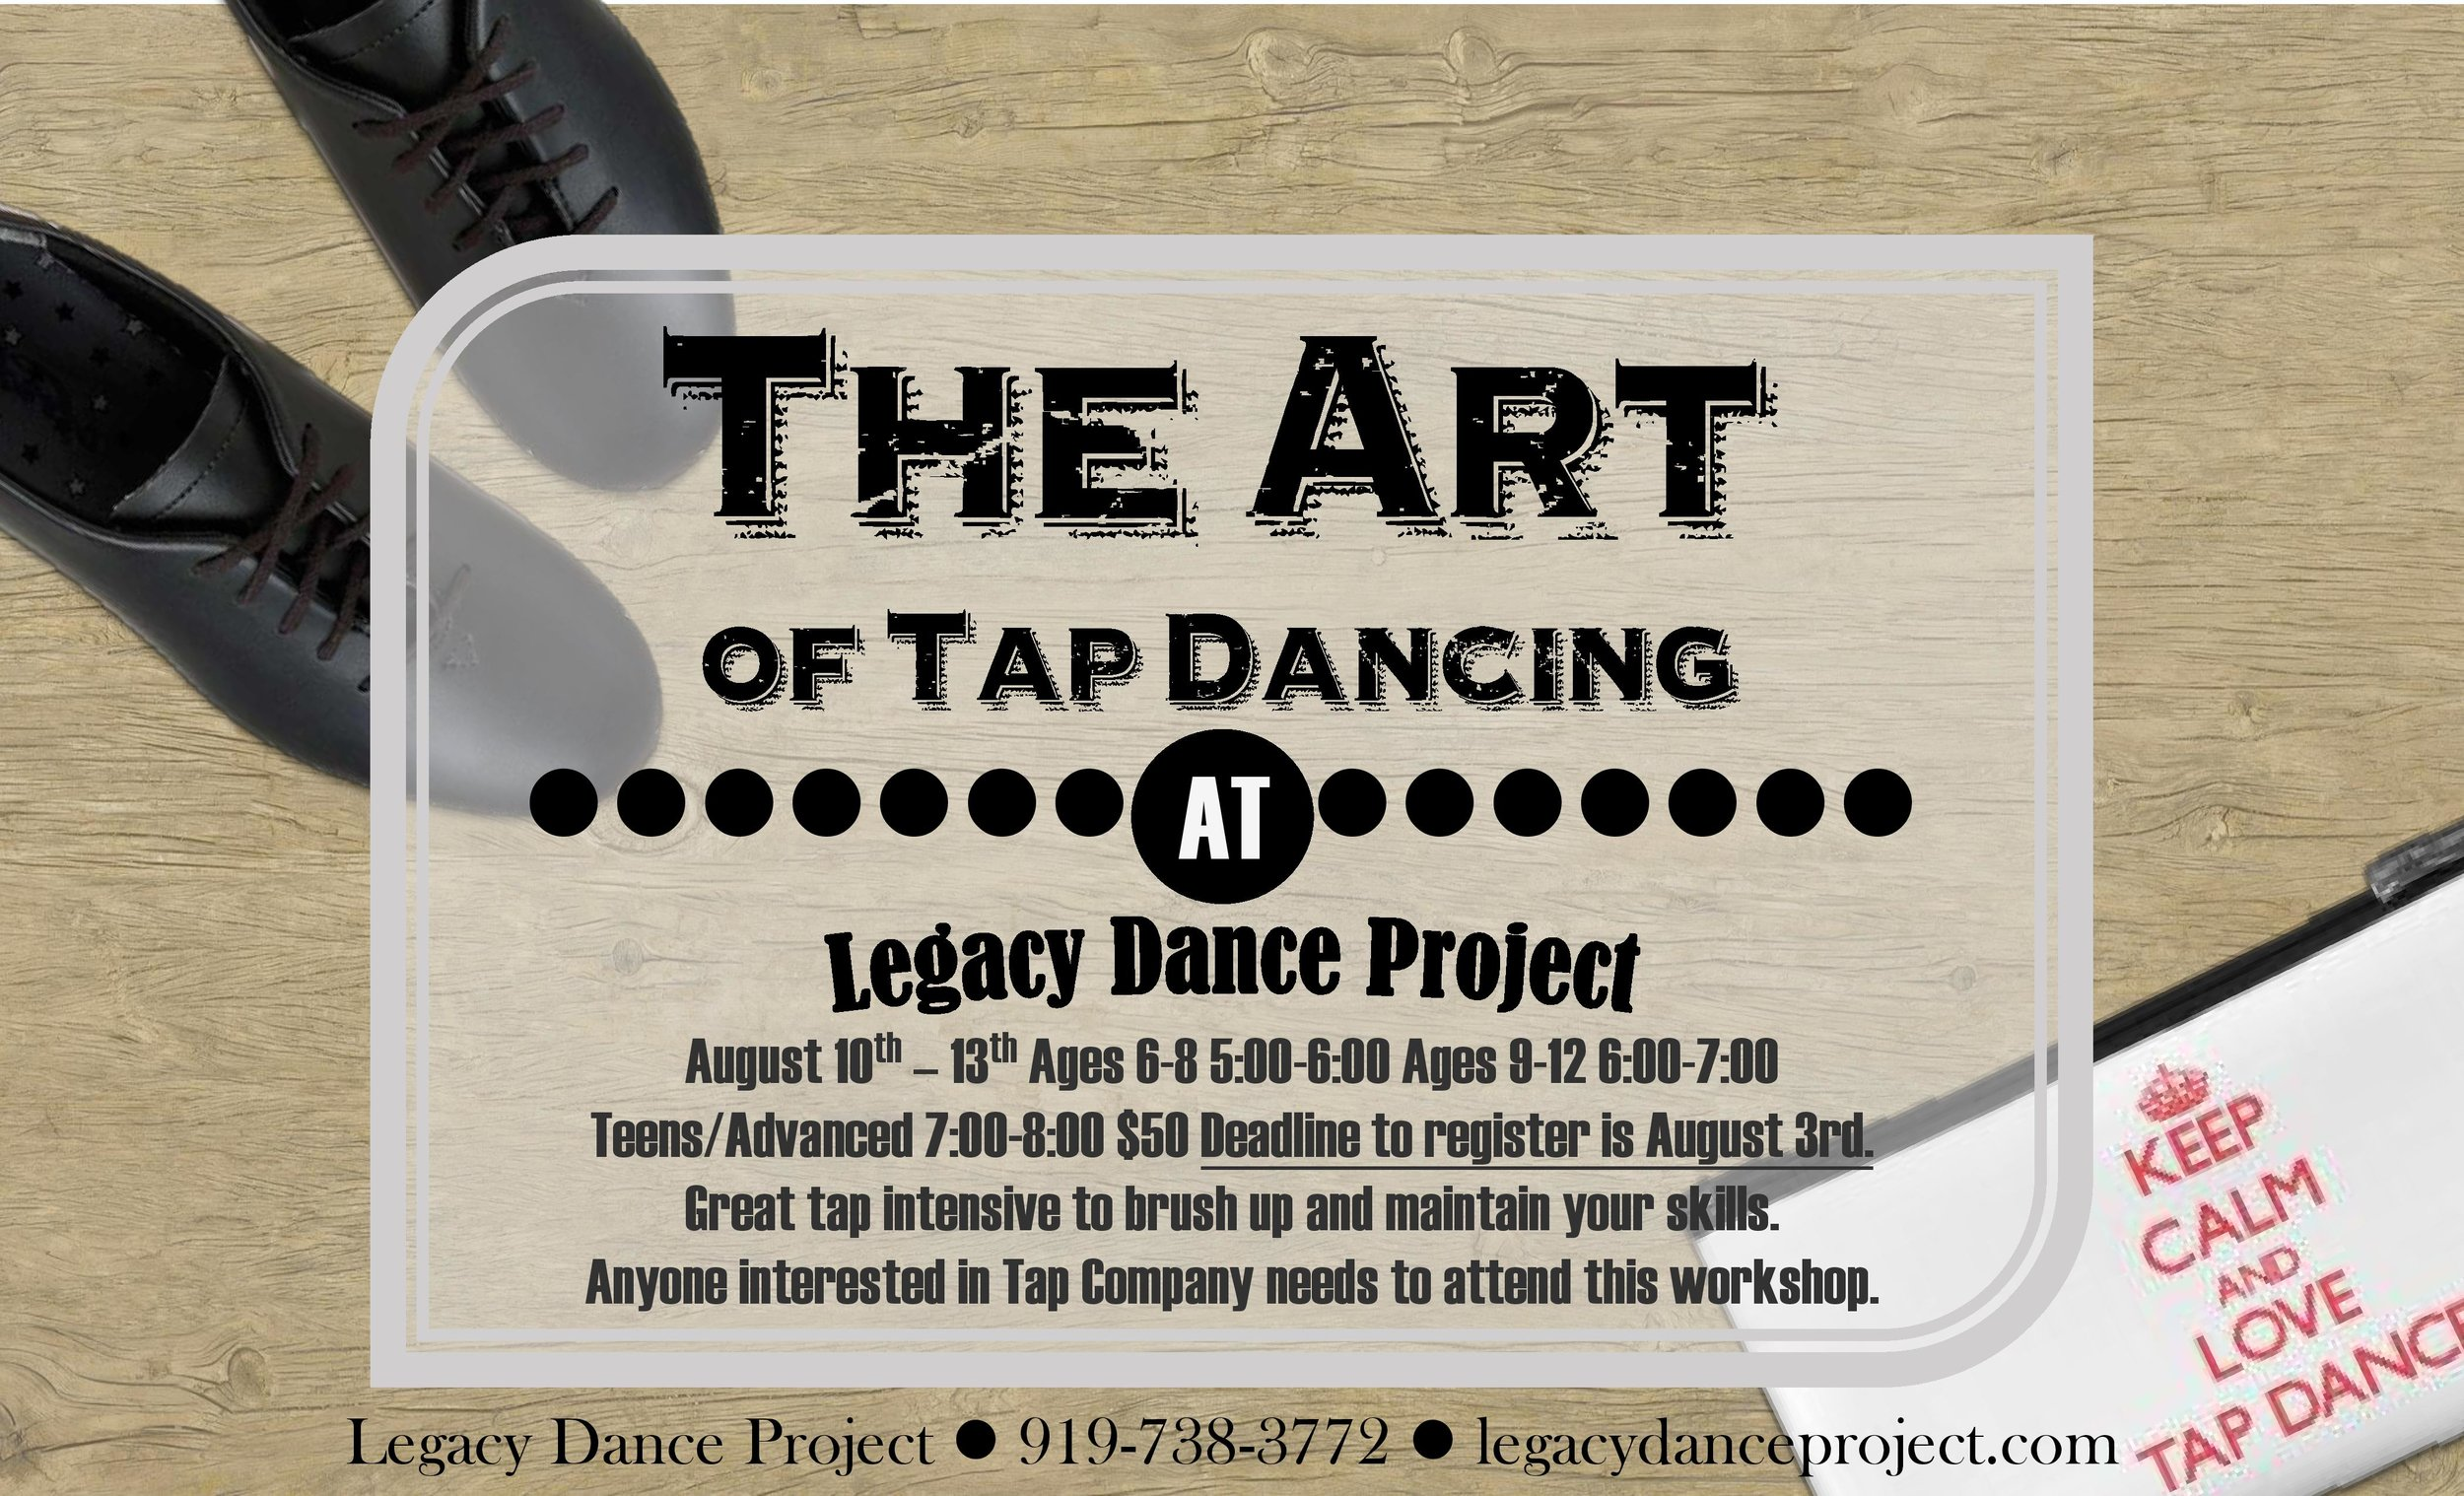 Just what the toe-tapping dancer needs! Anyone wanting to join LDP's tap company is also REQUIRED attend.